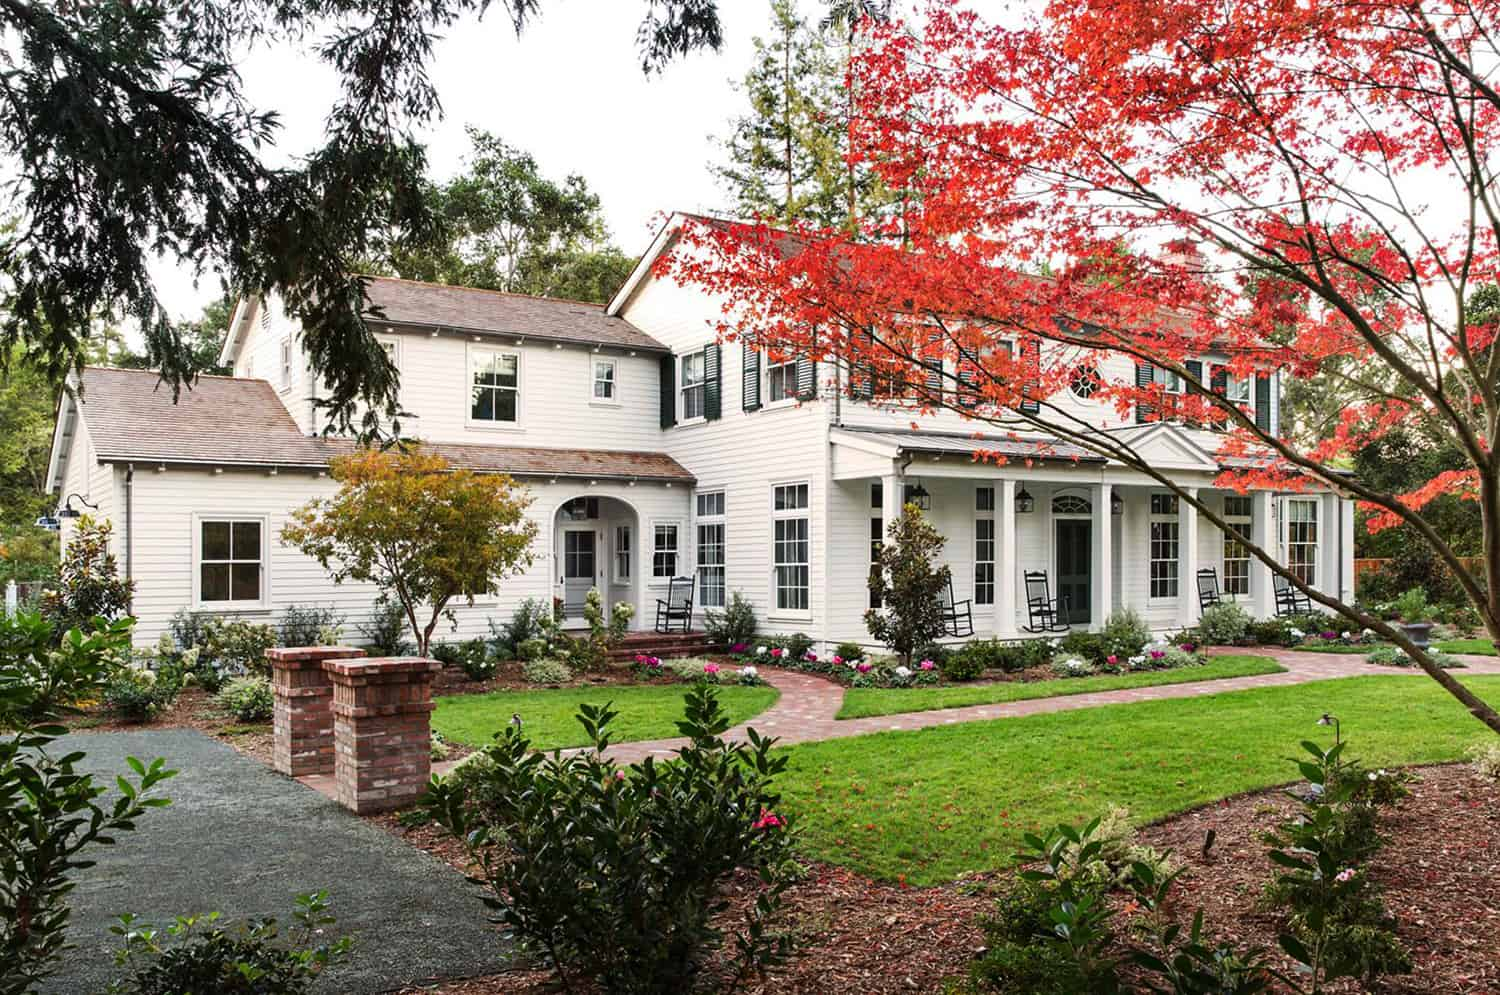 Tour a colonial revival farmhouse with traditional Southern charm